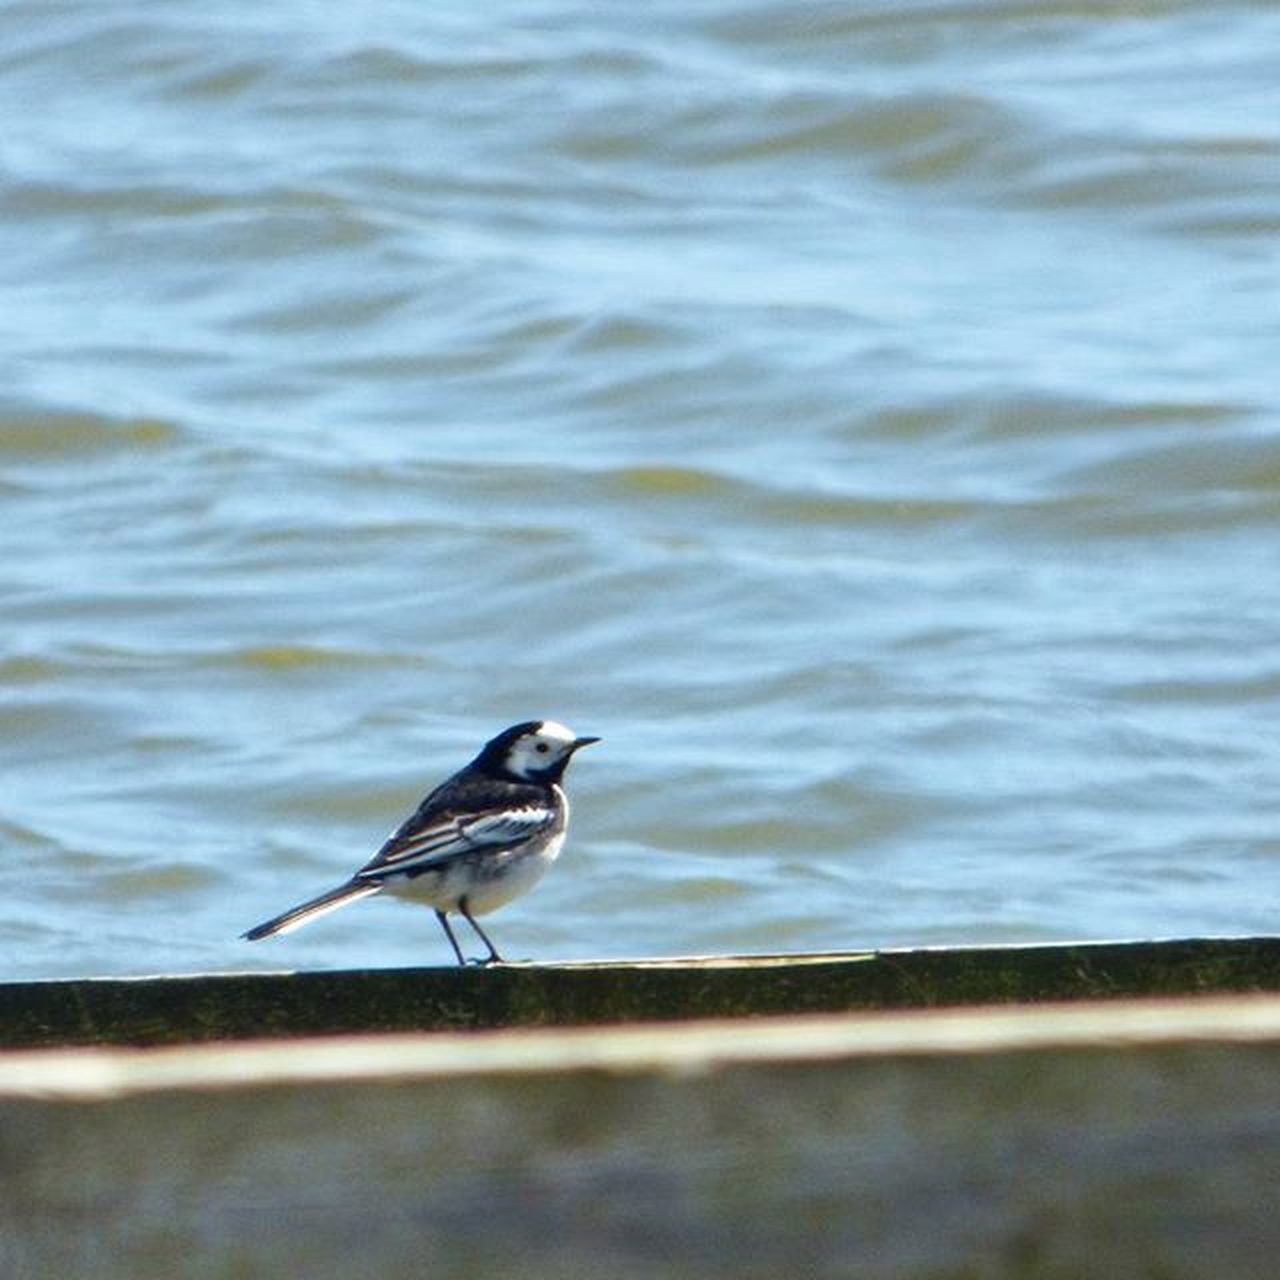 These Pied Wagtails are one of my favourites, bobbing along looking like they are dancing to a tune only they can hear 😍 Nature Photography Uknaturecollective Nature Wild Followme Ig_birdlovers Urbanwildlife Ig_birdwatchers Nuts_about_birds Kings_birds Wildlife Nature England Rsa_nature Ukwildlifeimages Springwatch Lumix Sussex